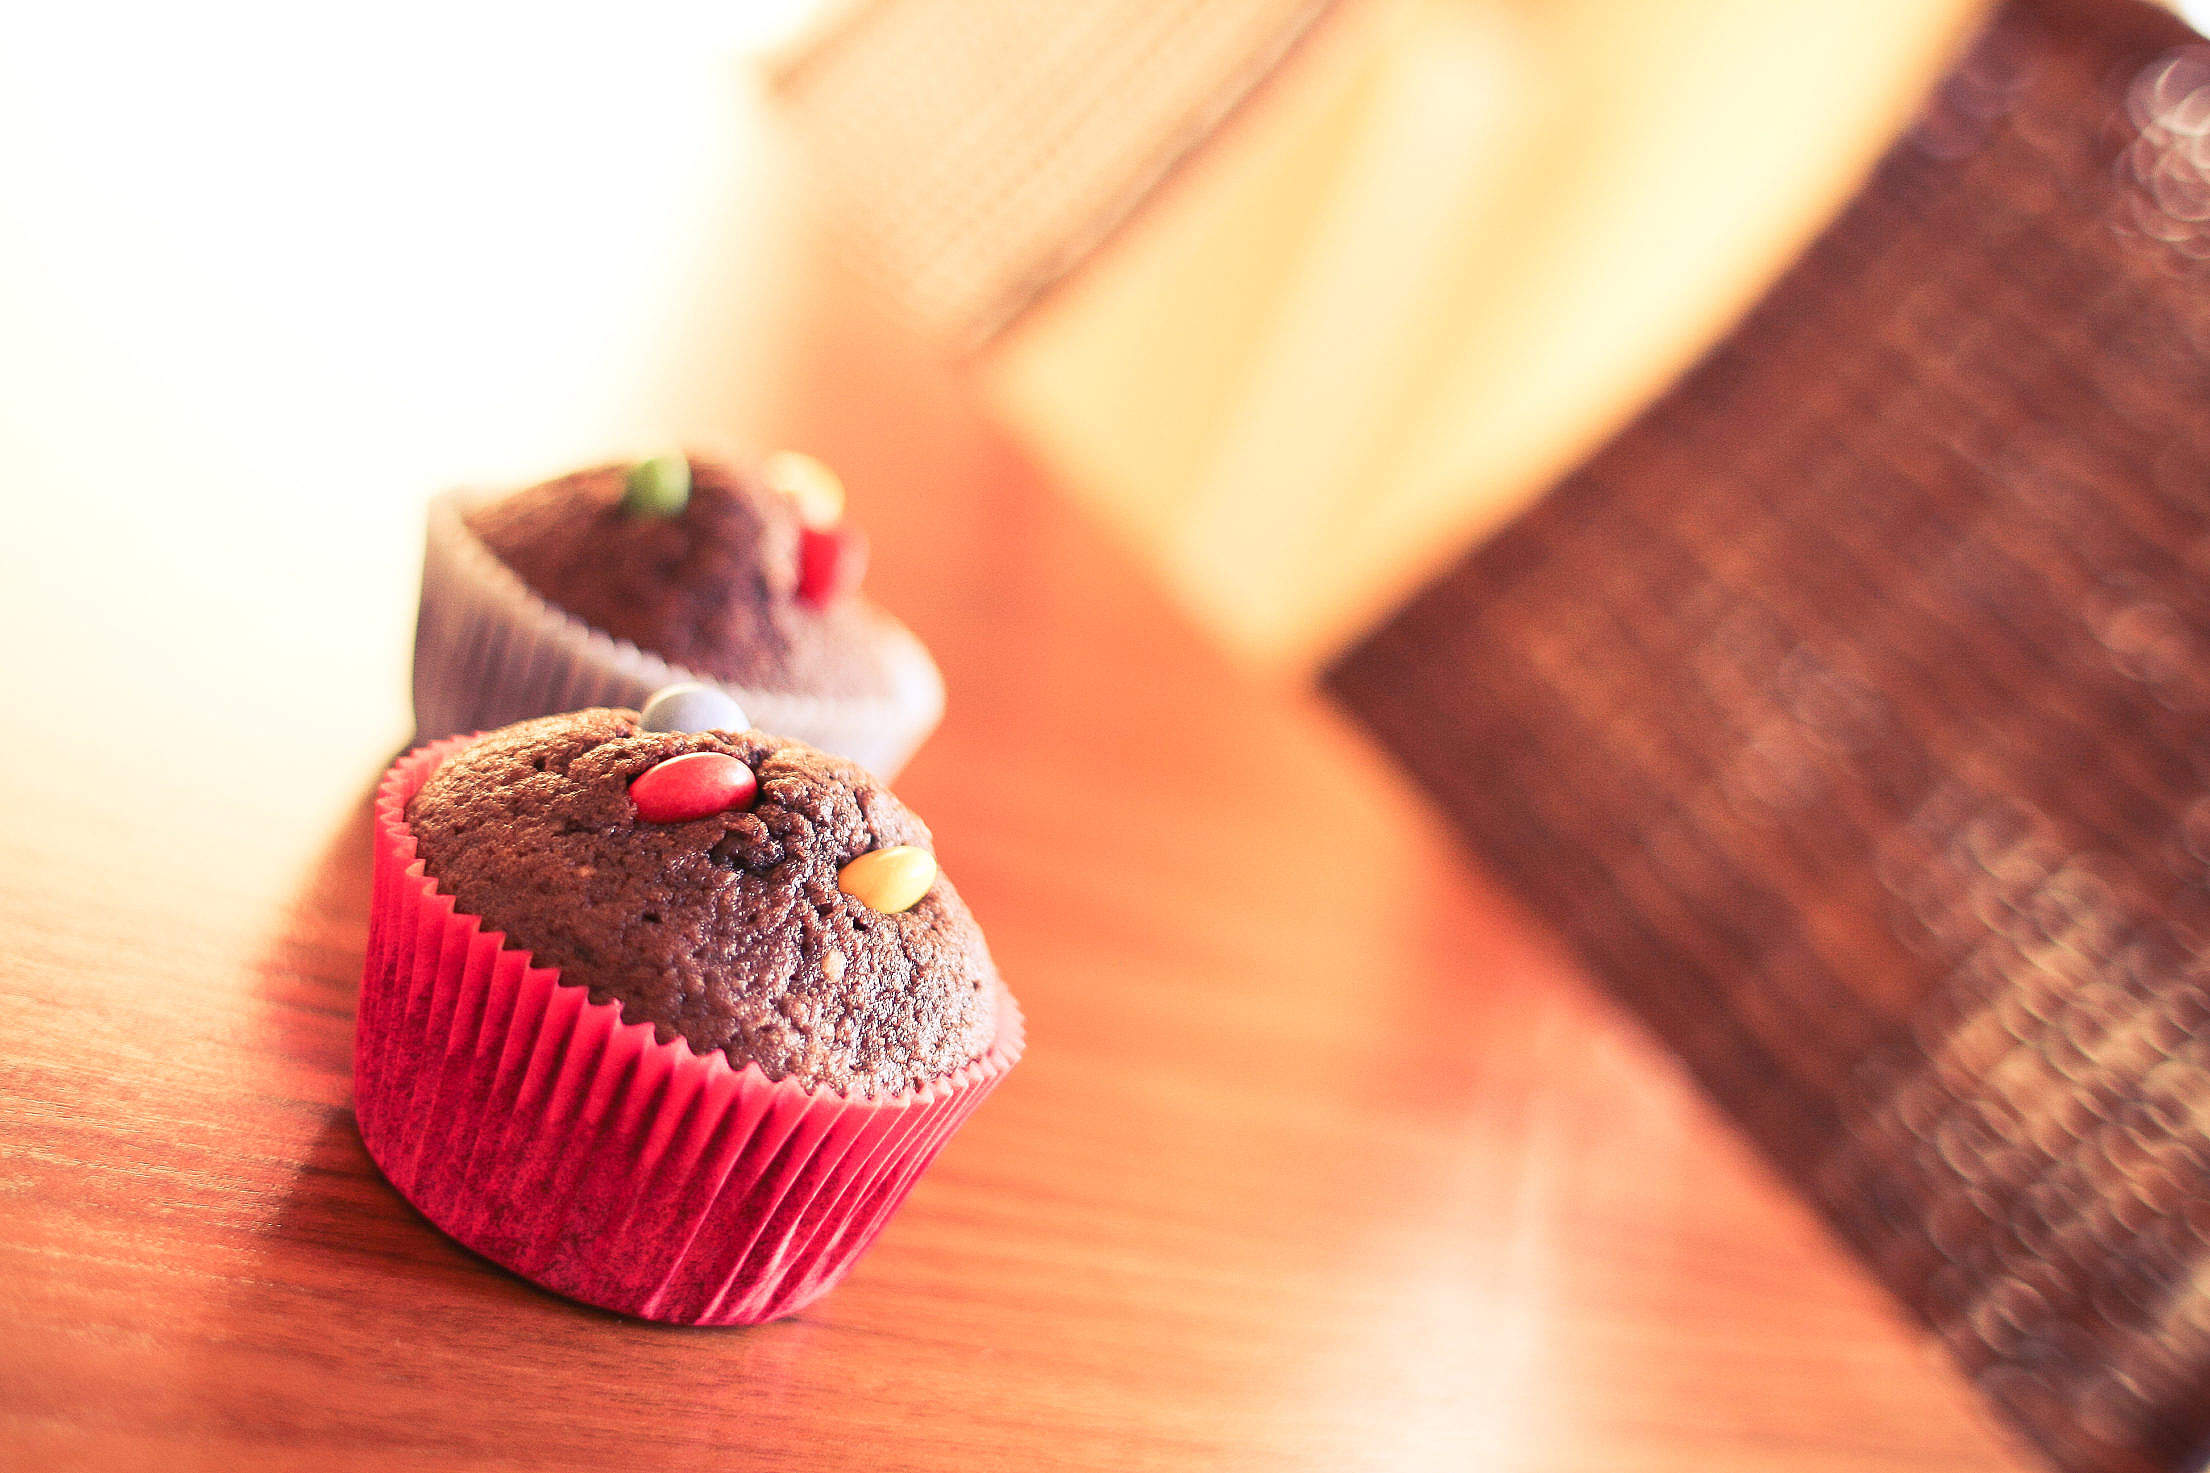 Another Yummy Muffins Free Stock Photo